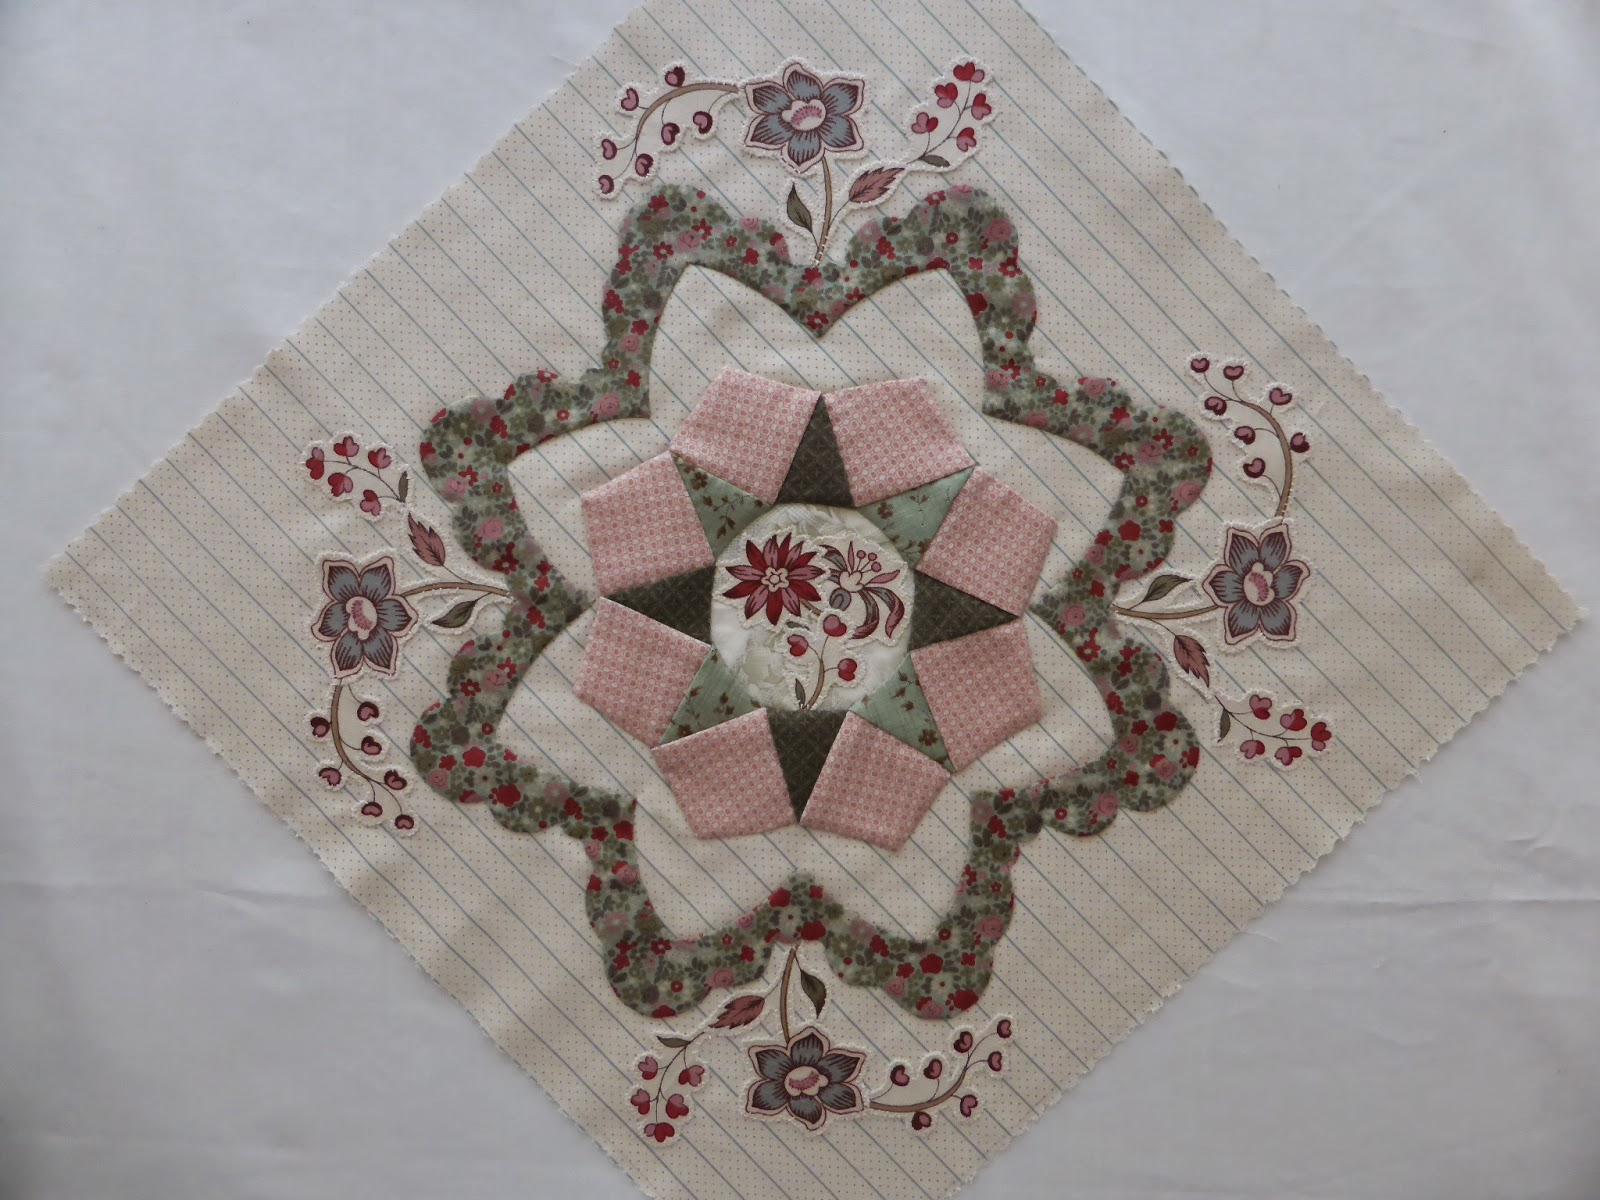 Antique Wedding Sampler quilt Di Ford Block #16